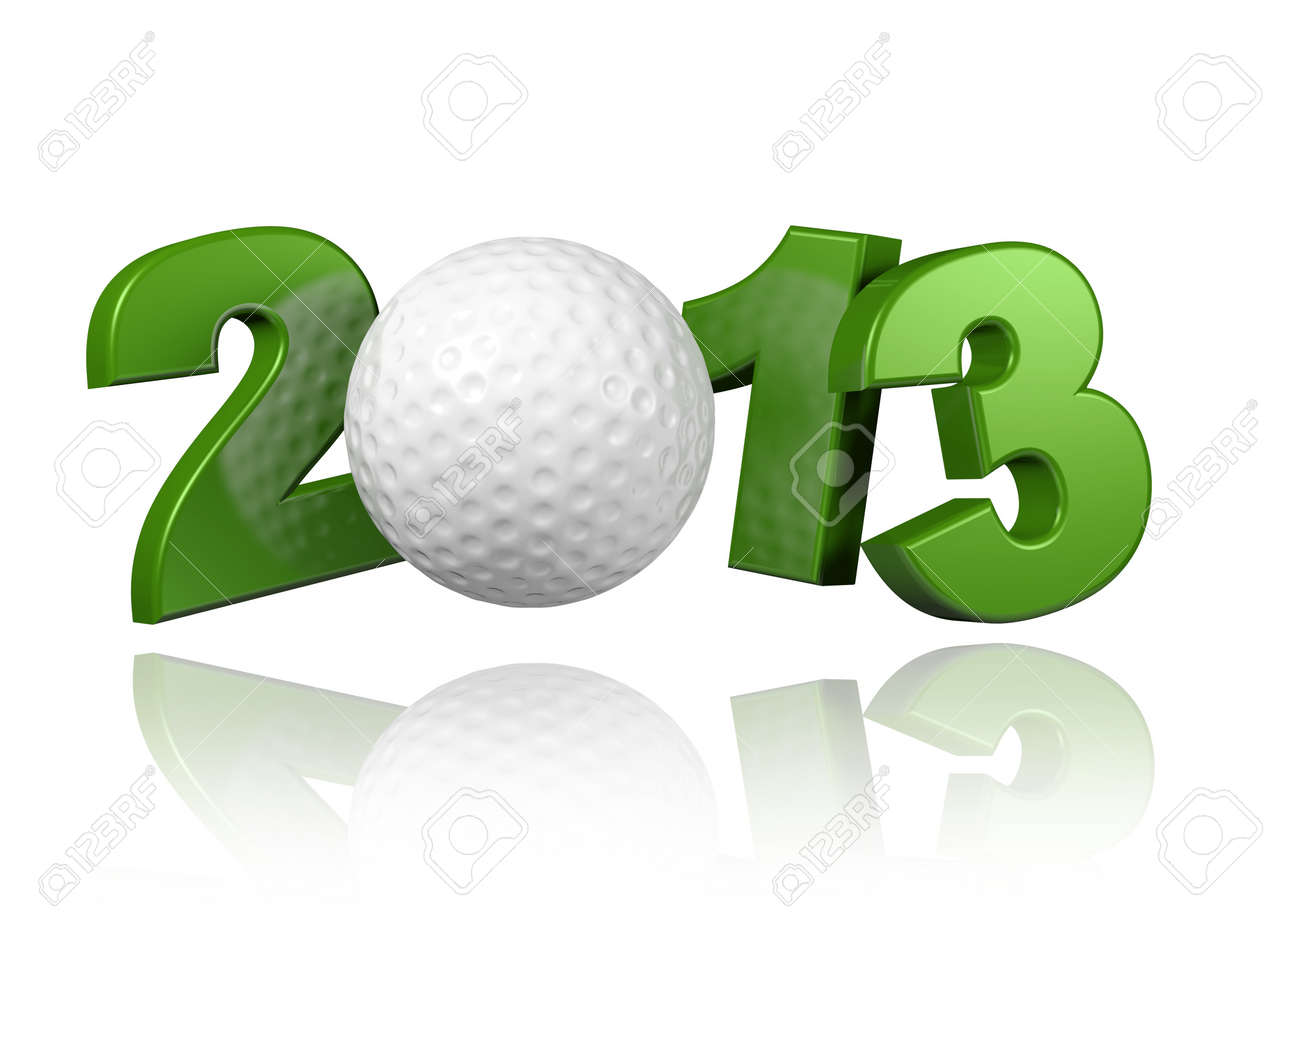 Golf 2013 with a White Background - 13983858